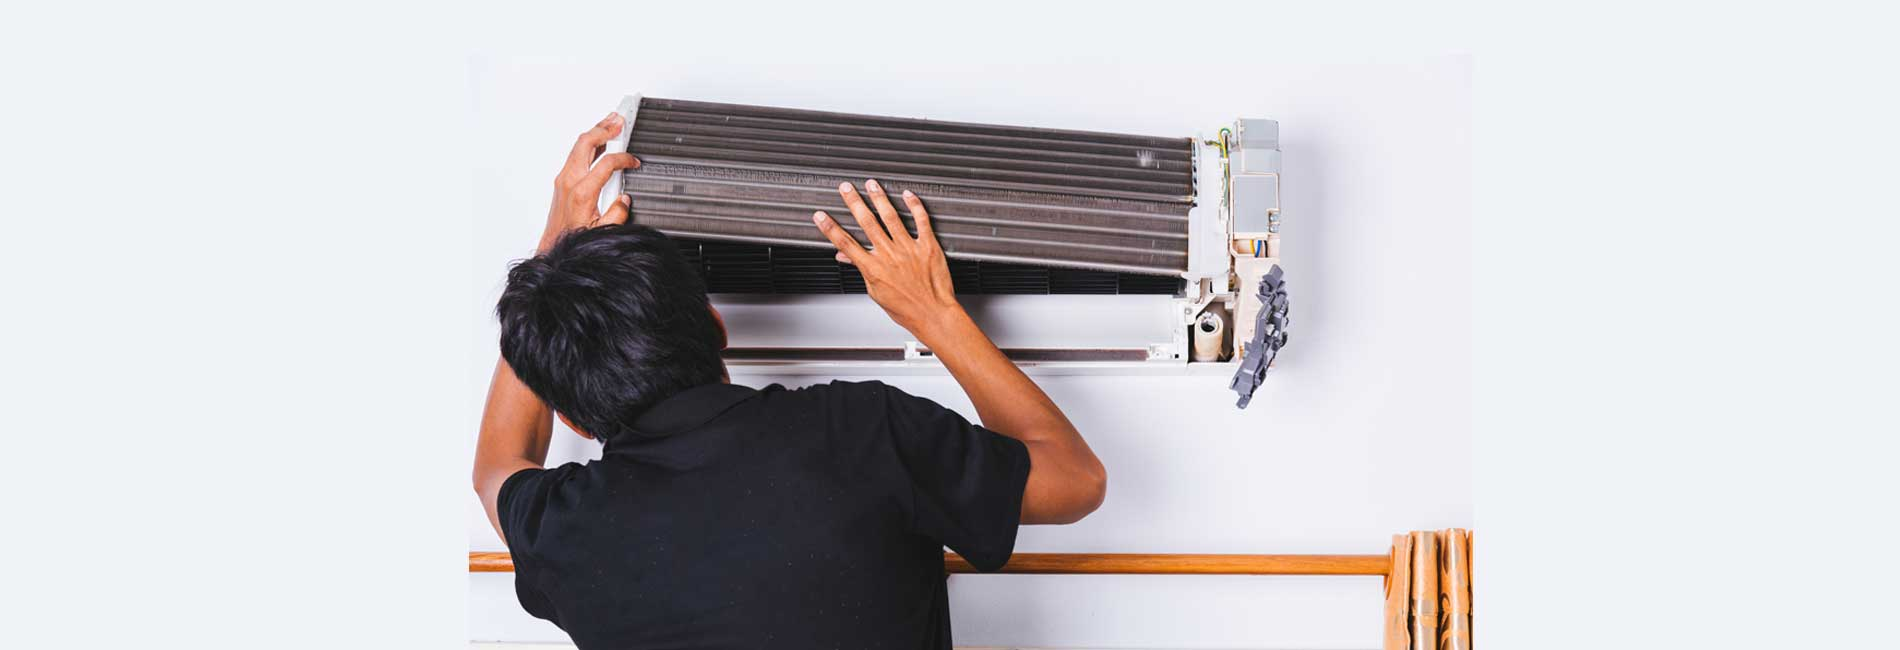 Air Conditioner Service in thirumudivakkam